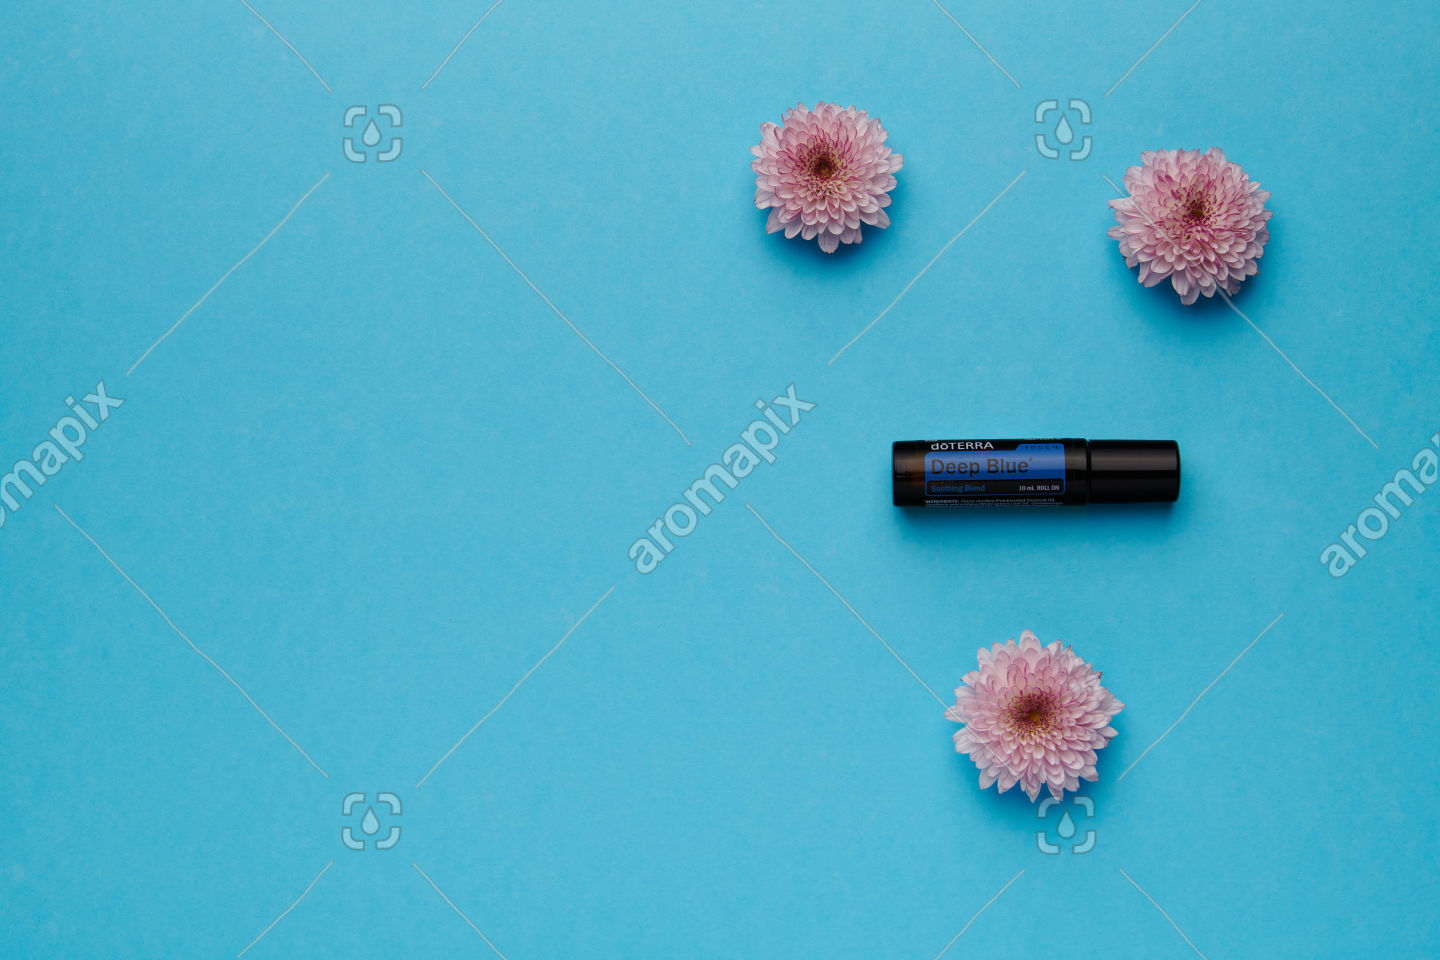 doTERRA Deep Blue Touch with flowers on blue